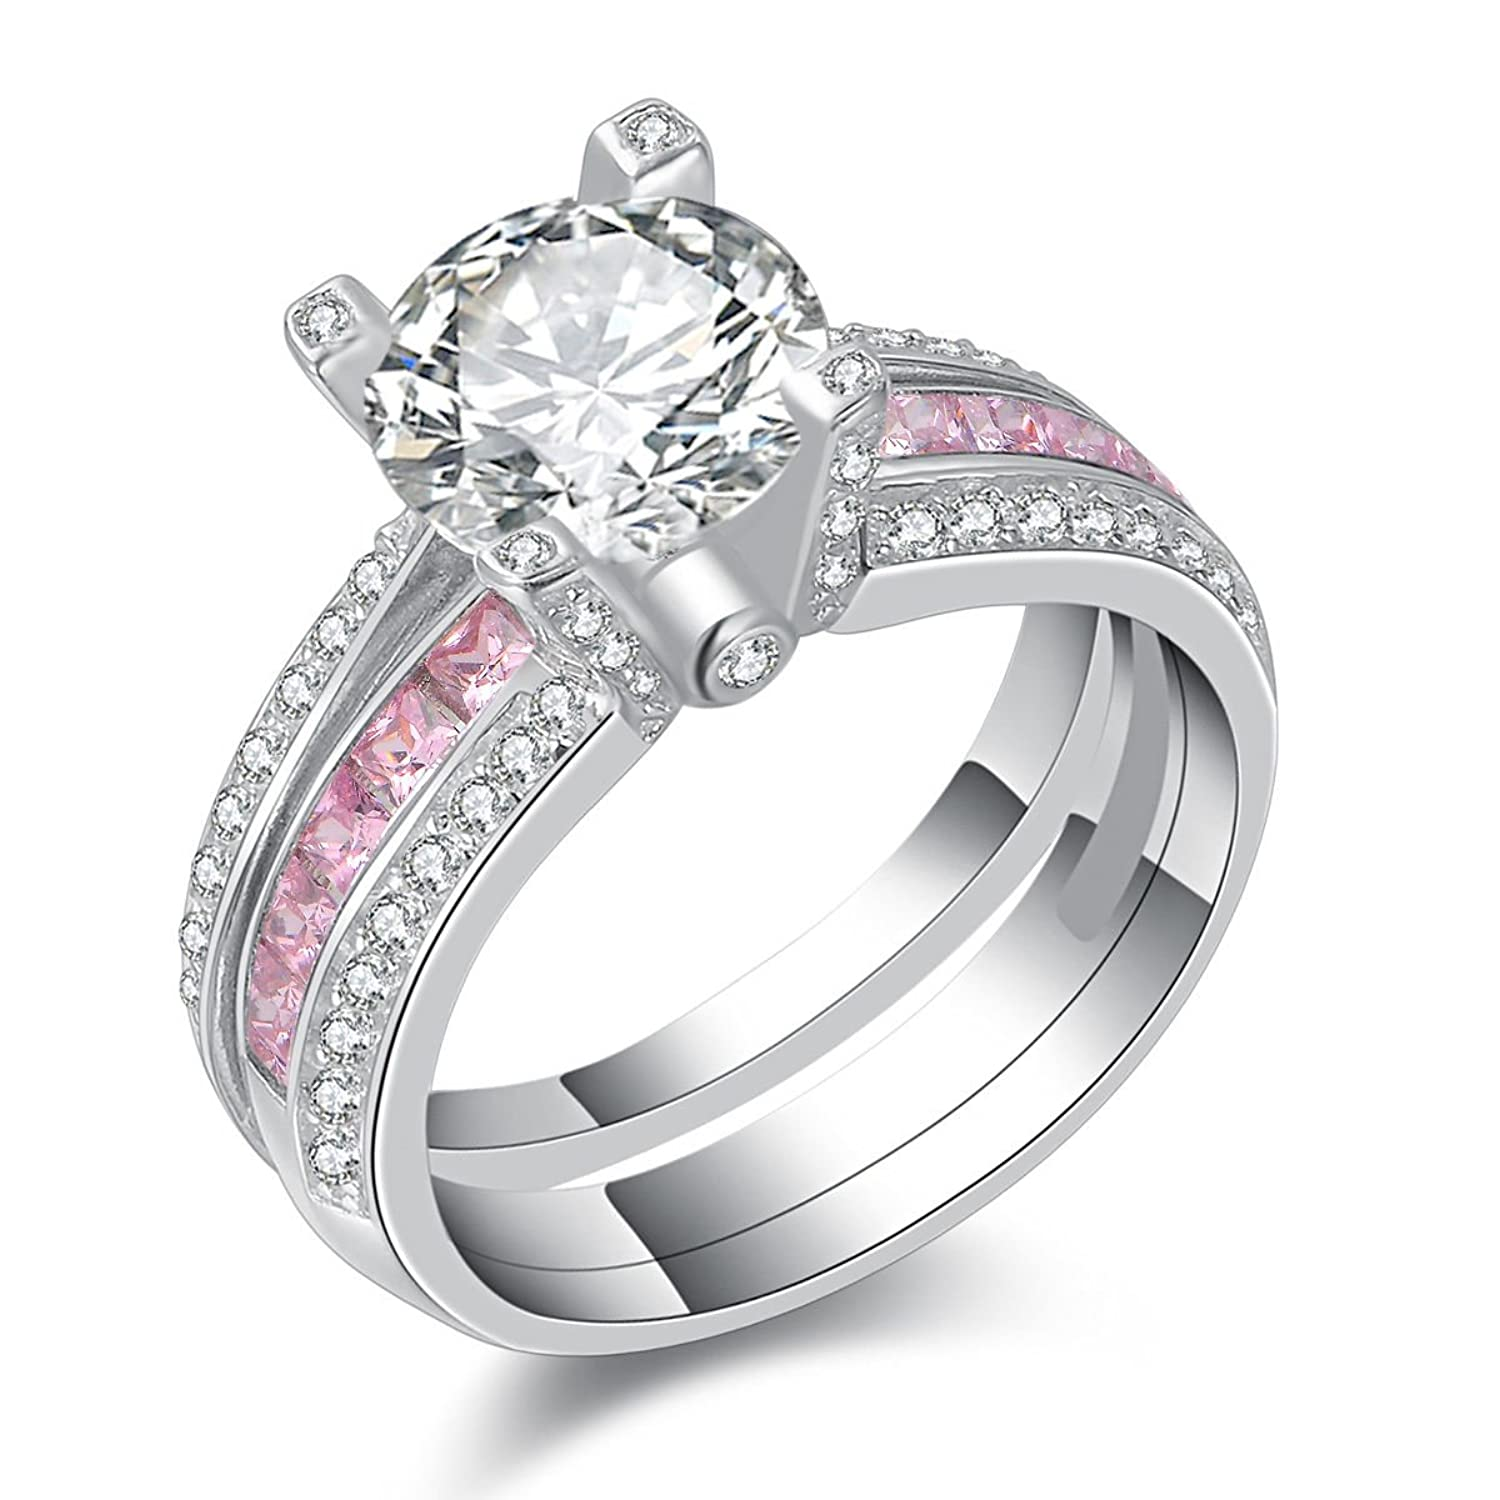 band coordinate robbins brothers with wedding and ring sets how to engagement rings your from